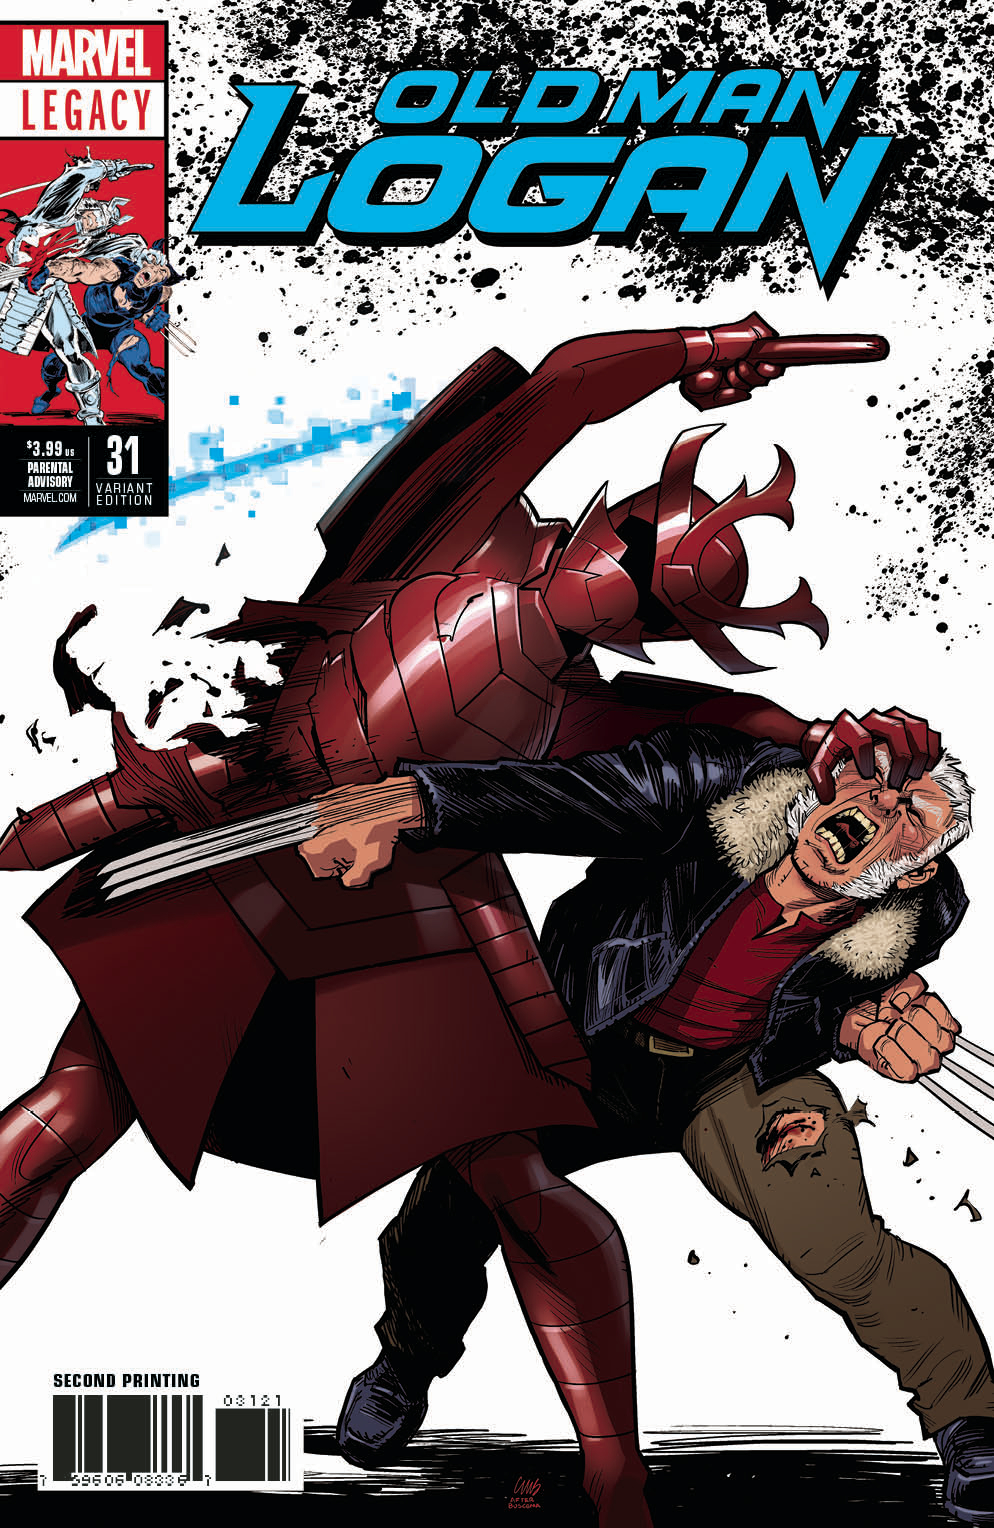 OLD MAN LOGAN #31 2ND PTG STEWART VAR LEG